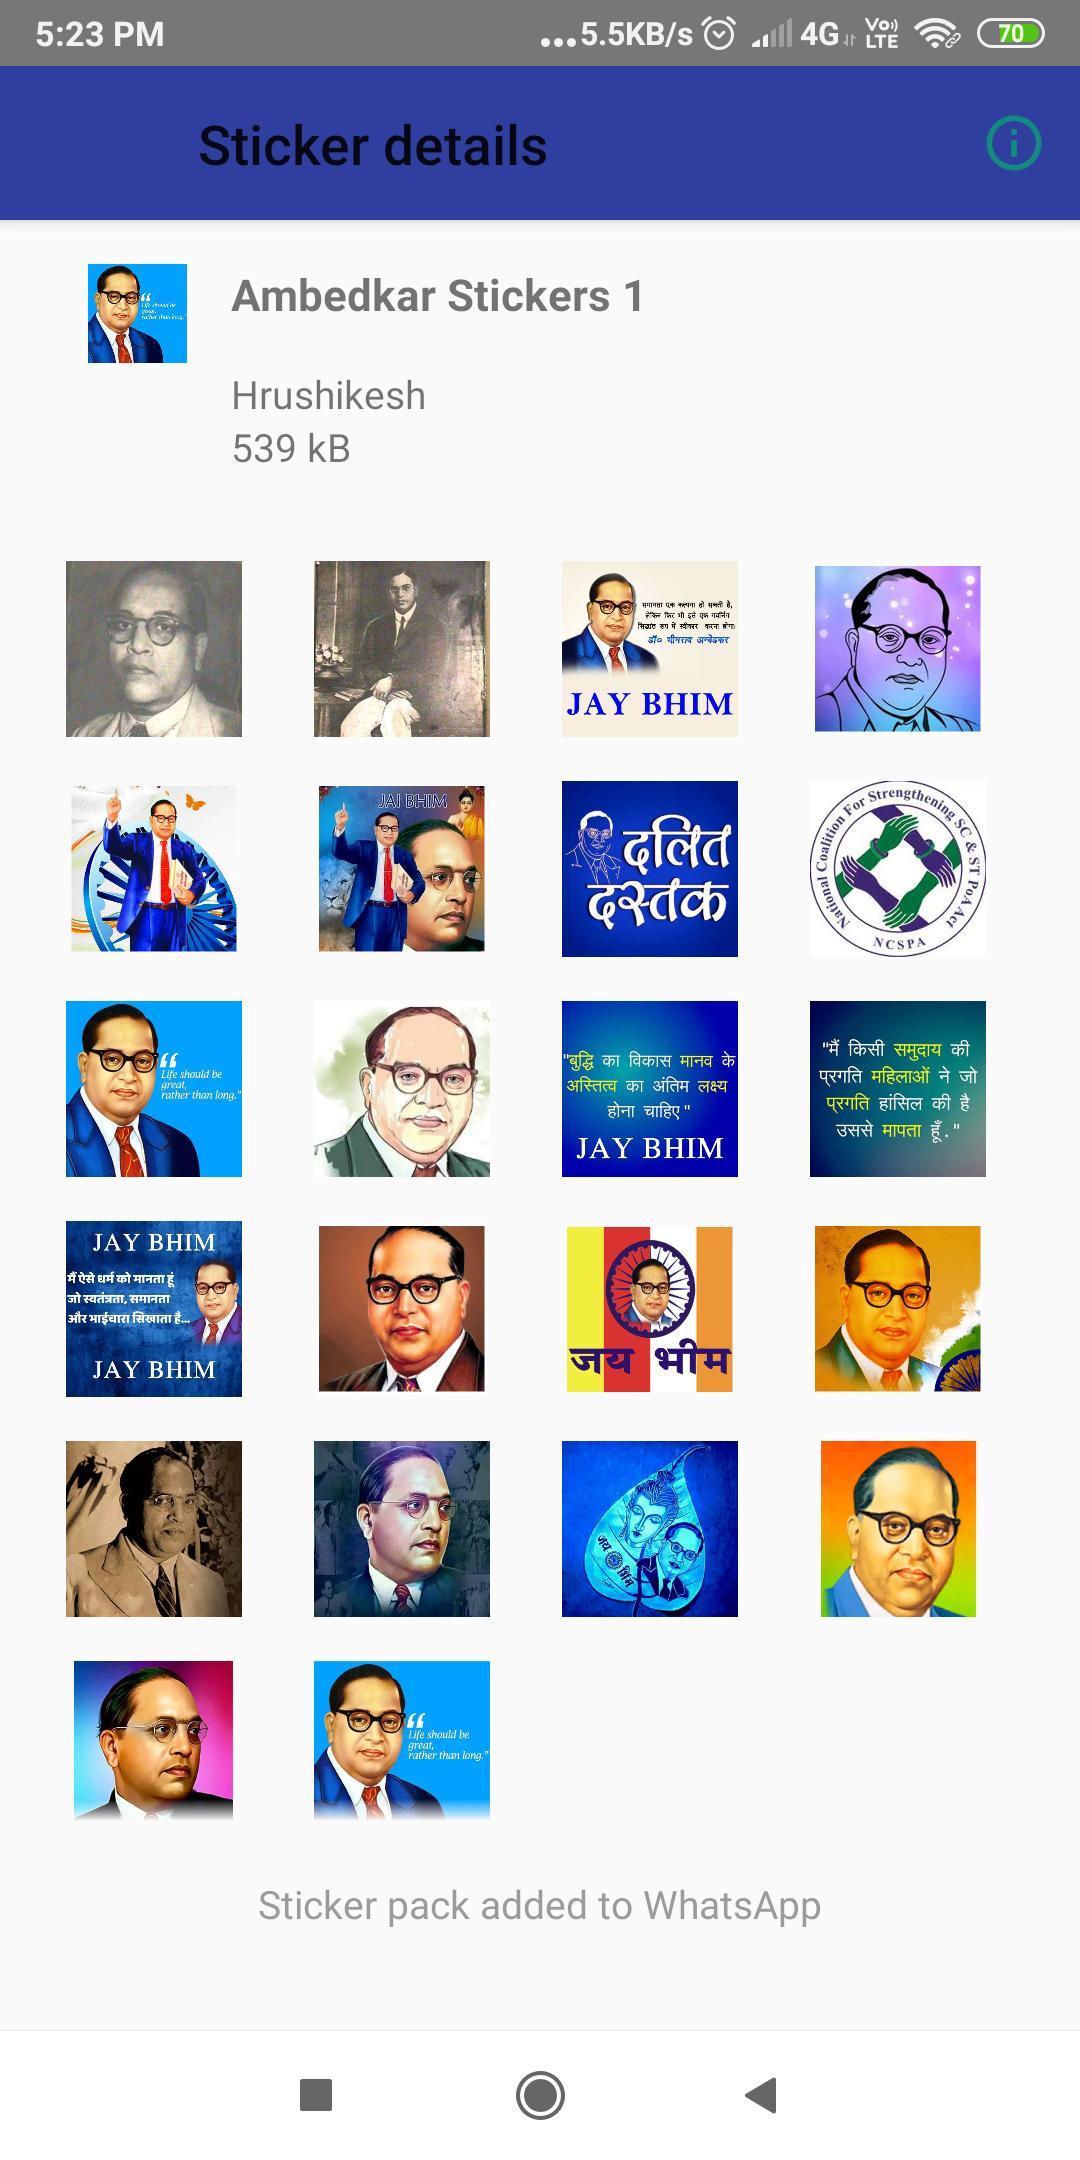 Jay Bhim Stickers For WhatsApp for Android - APK Download